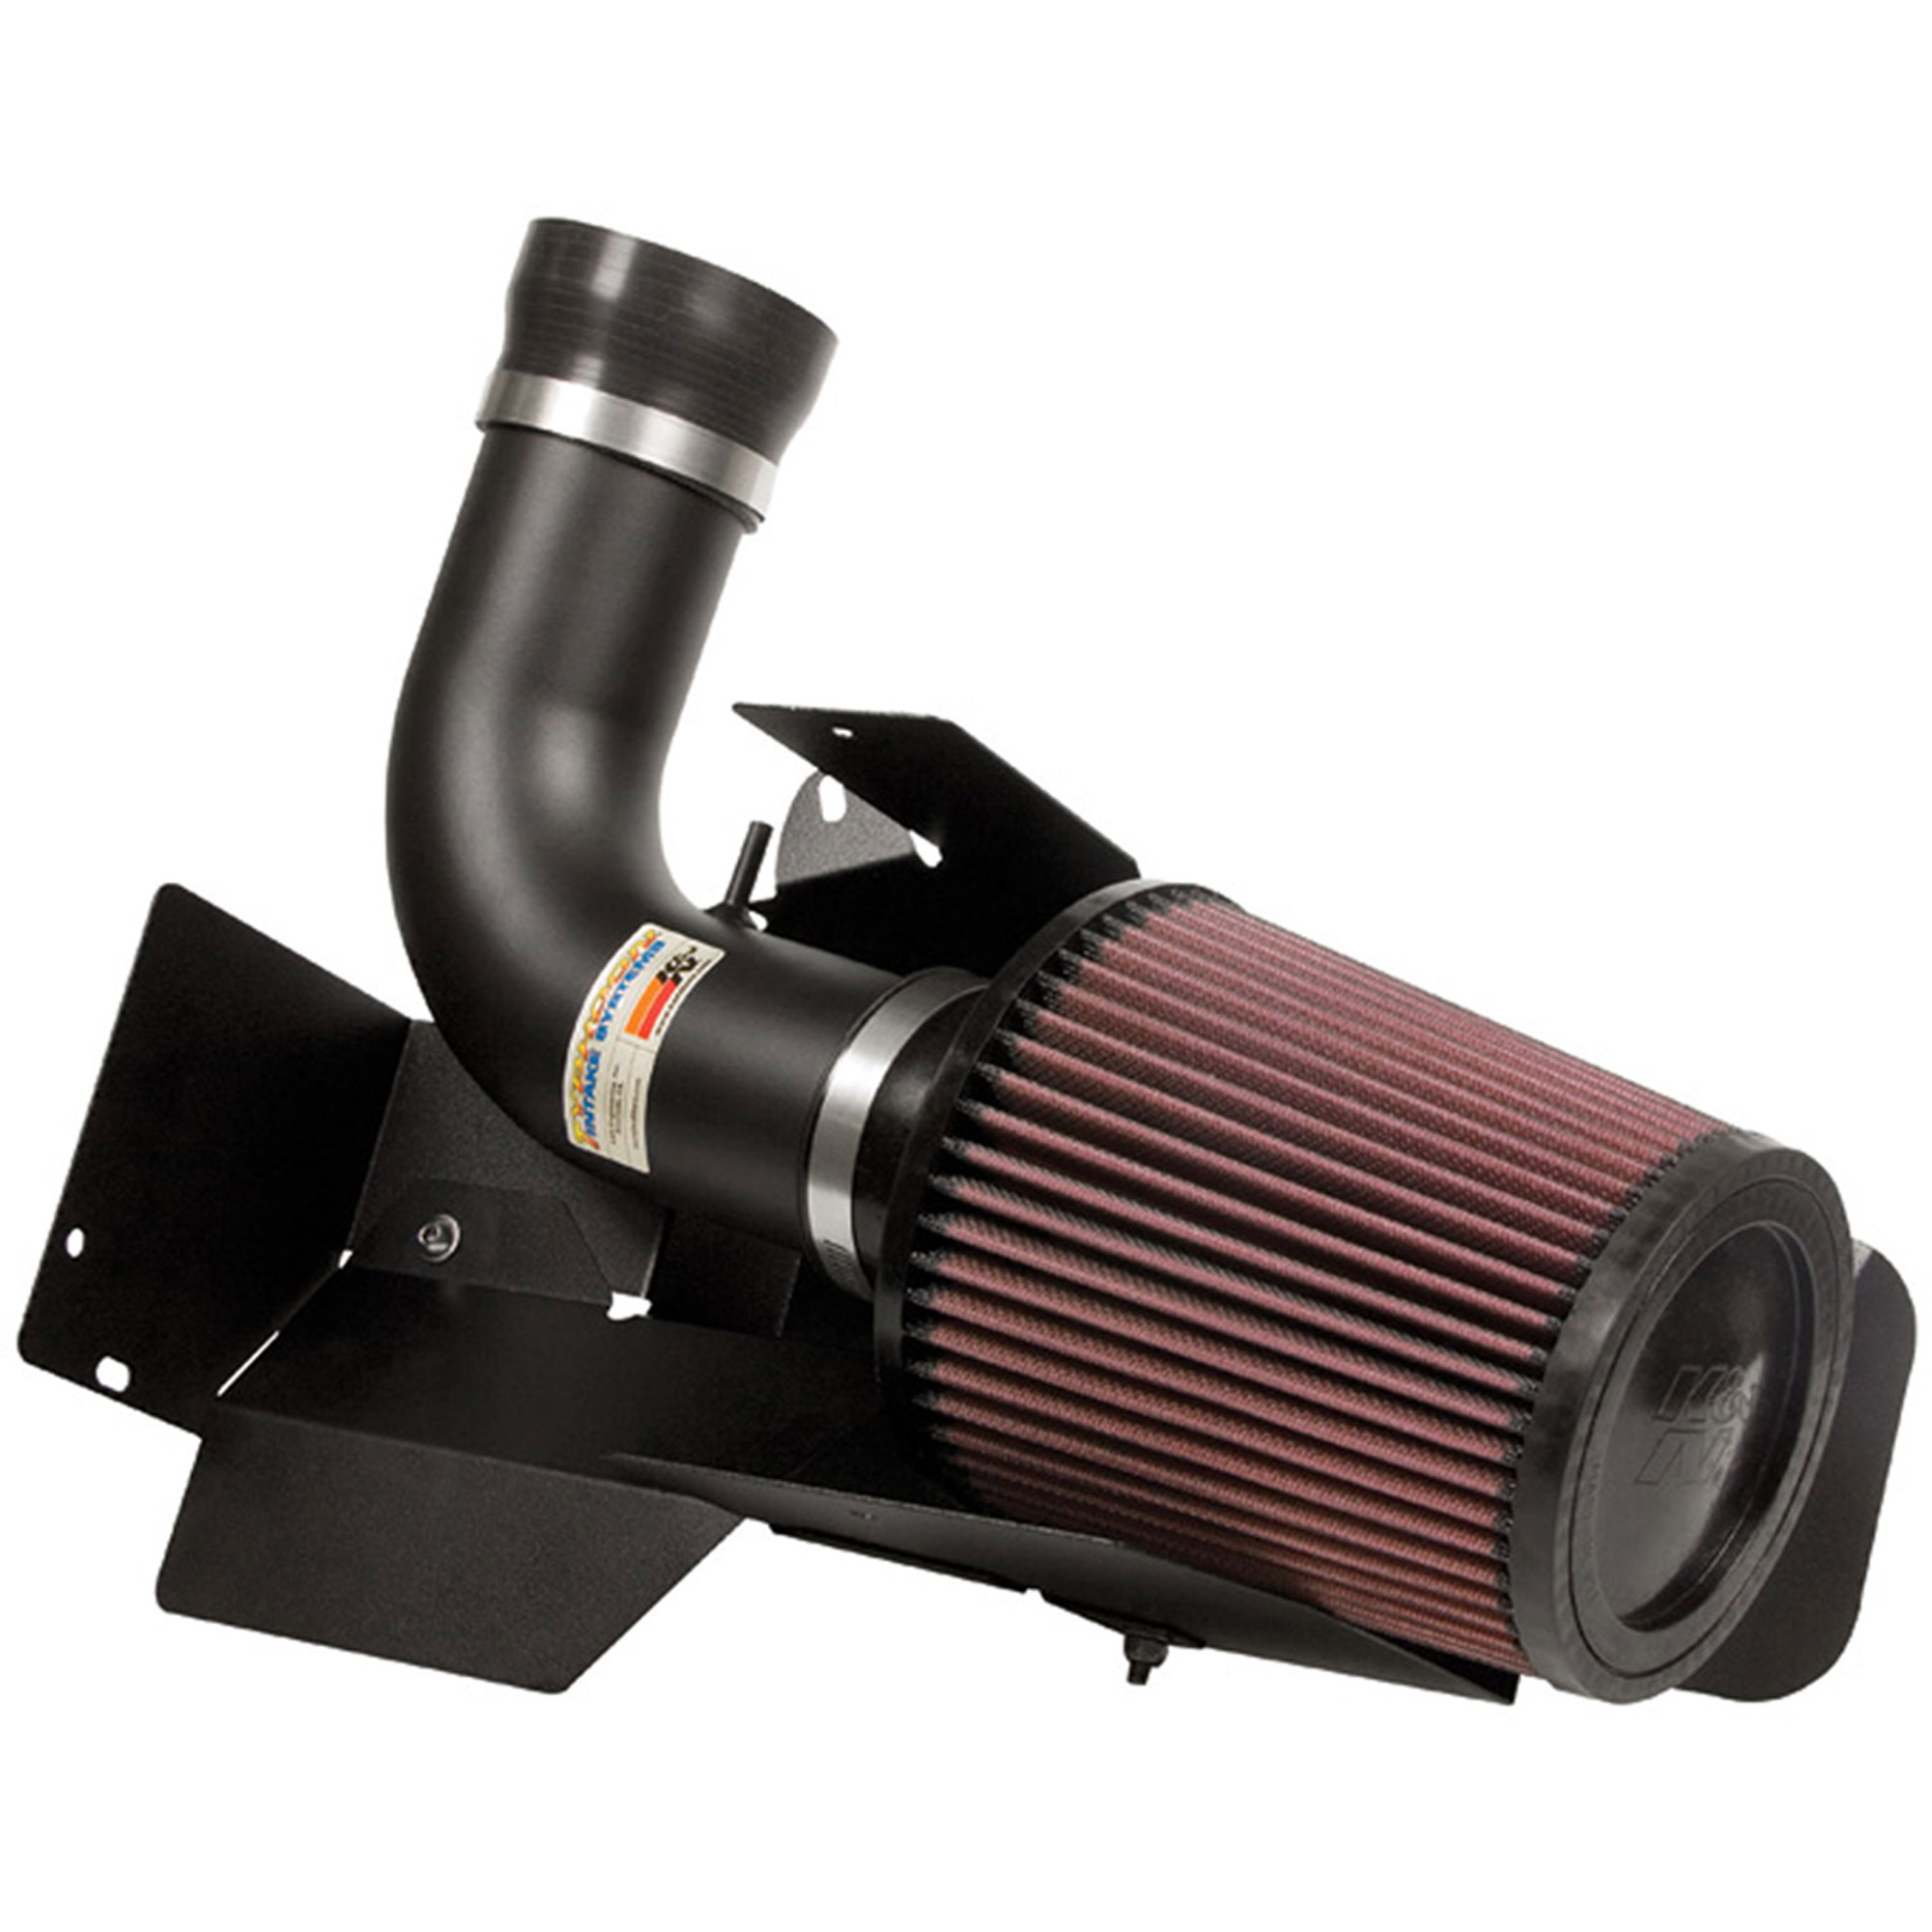 K&N Performance Intake Kit # 69-9756TFK (Not Avail for purchase in California)